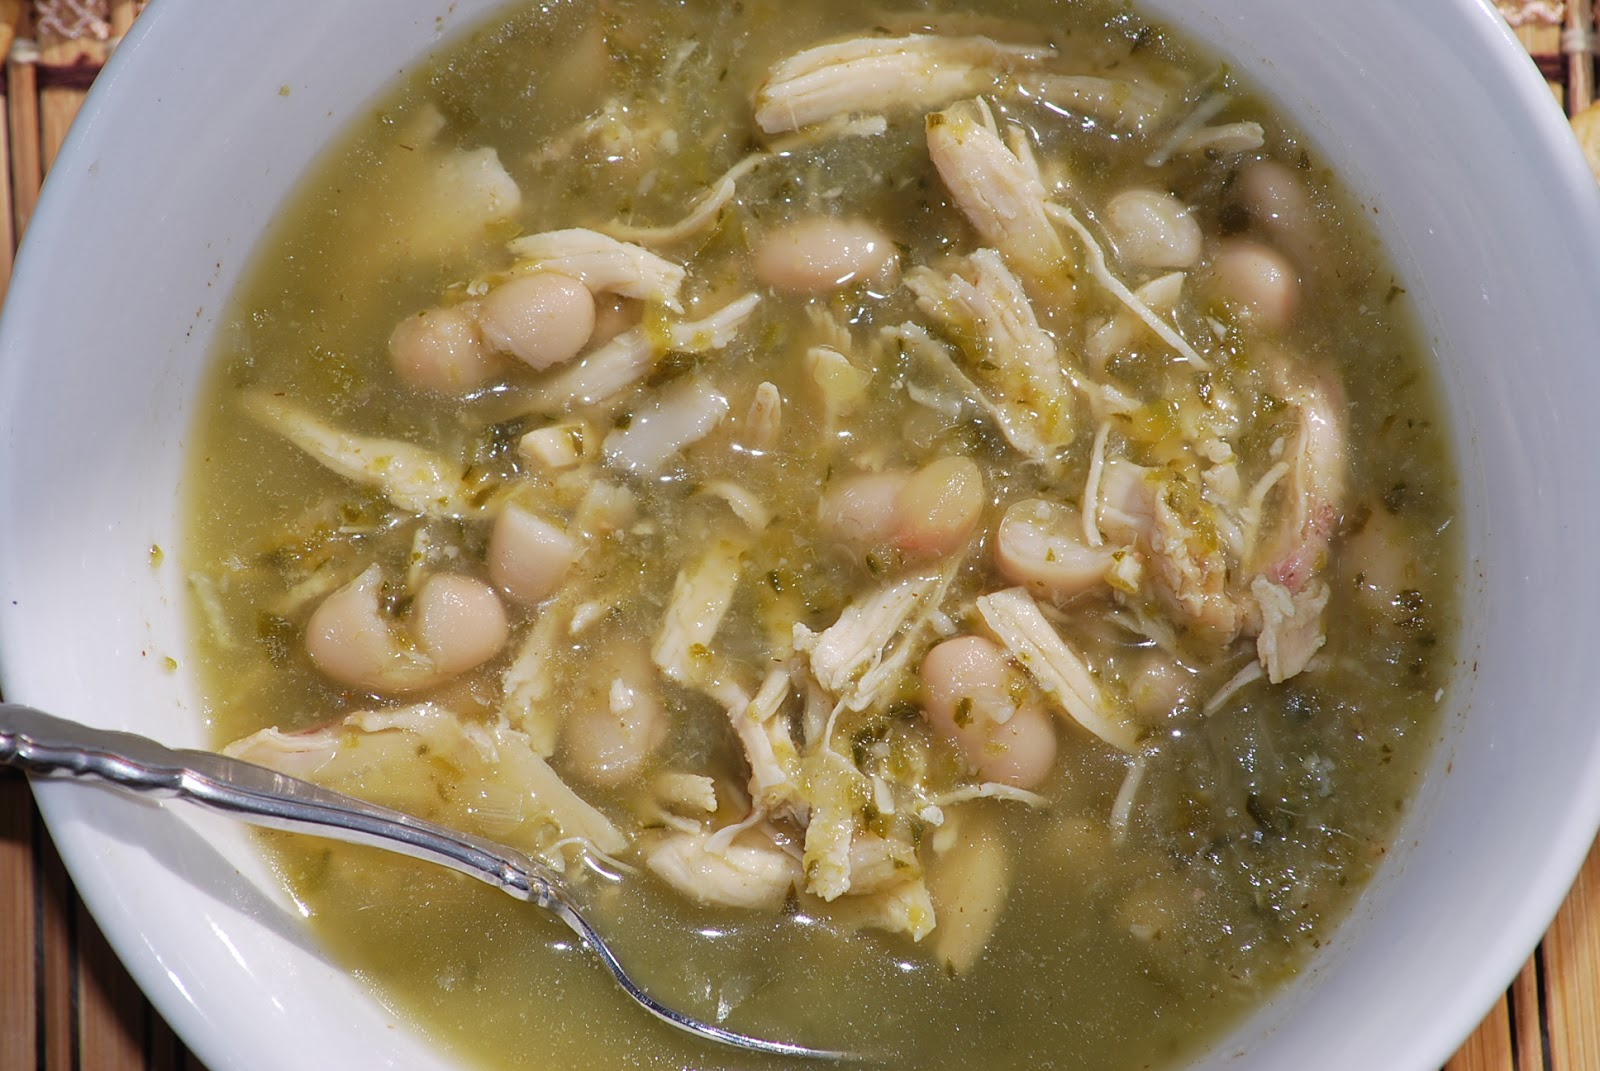 My story in recipes: White Chicken Chili